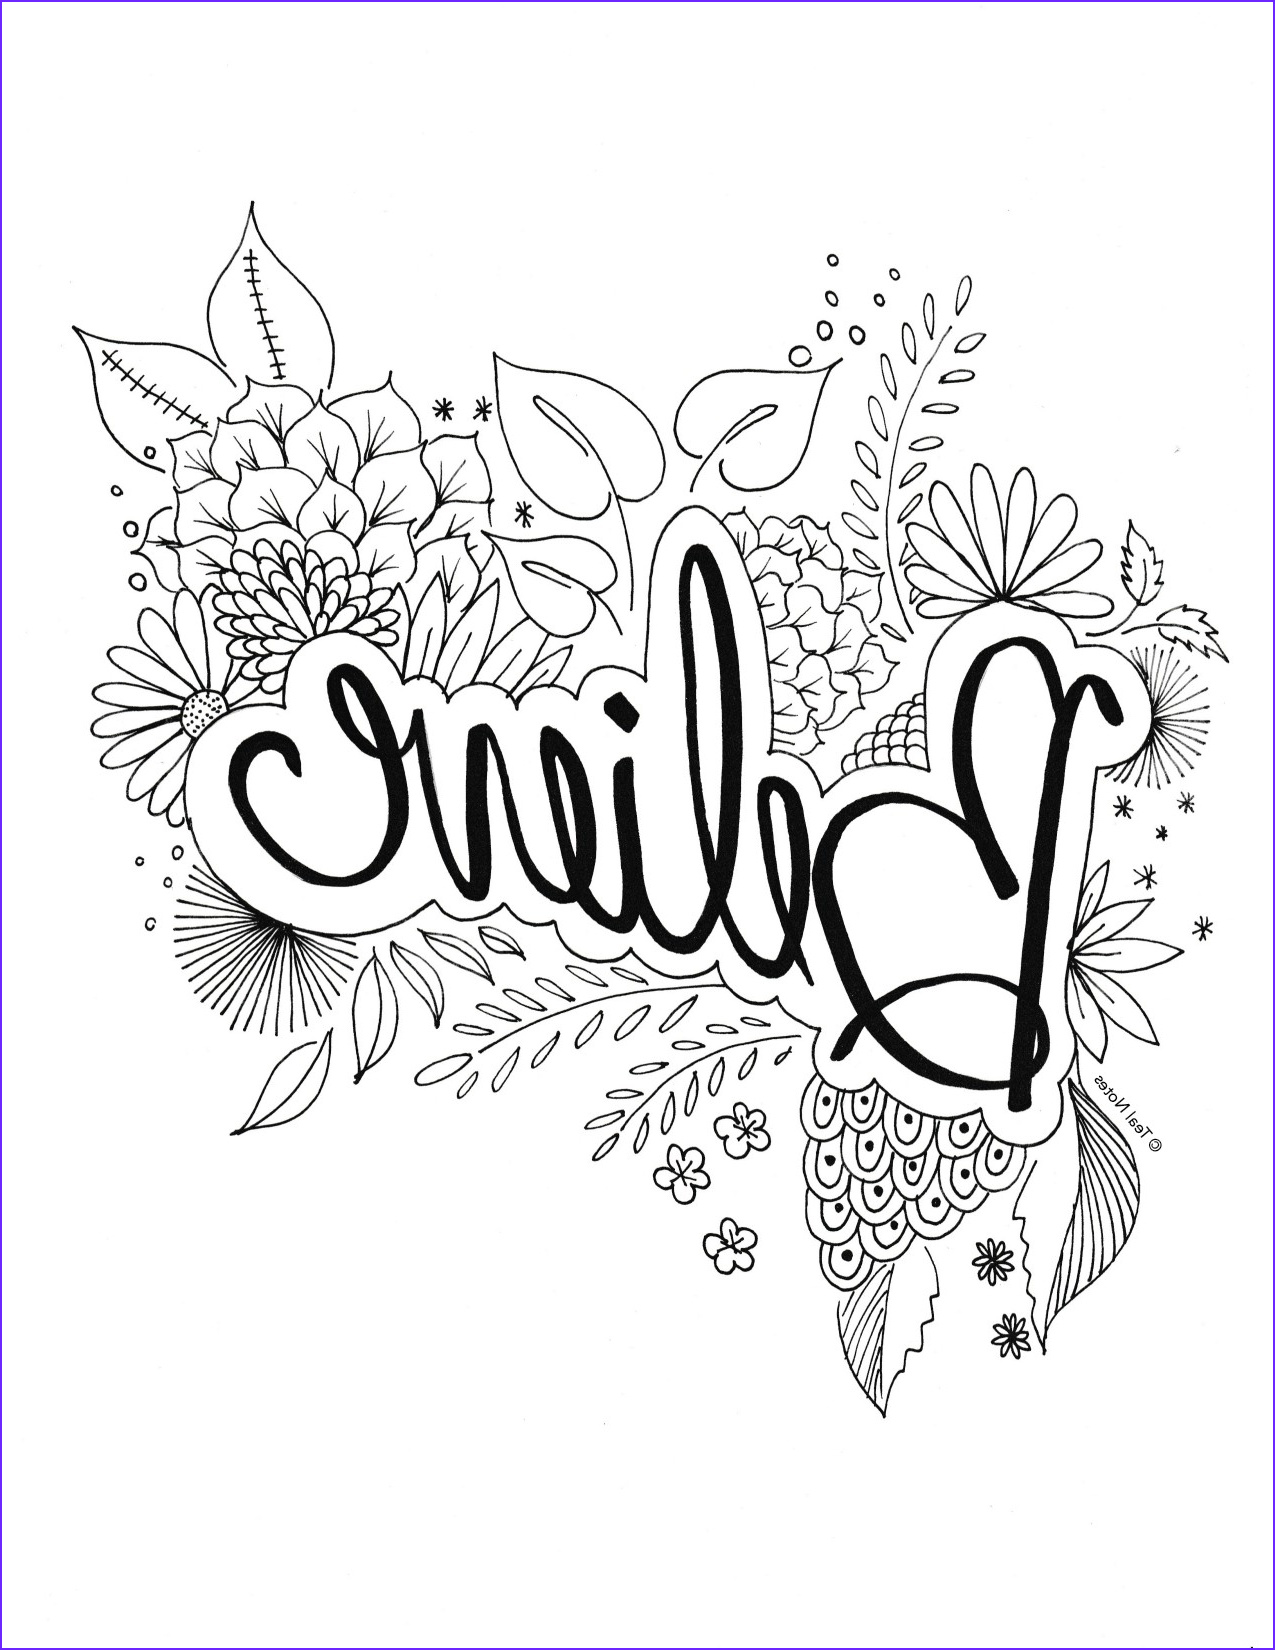 Free Quote Coloring Page Unique Photos 5 Quote Coloring Pages You Can Print and Color Your